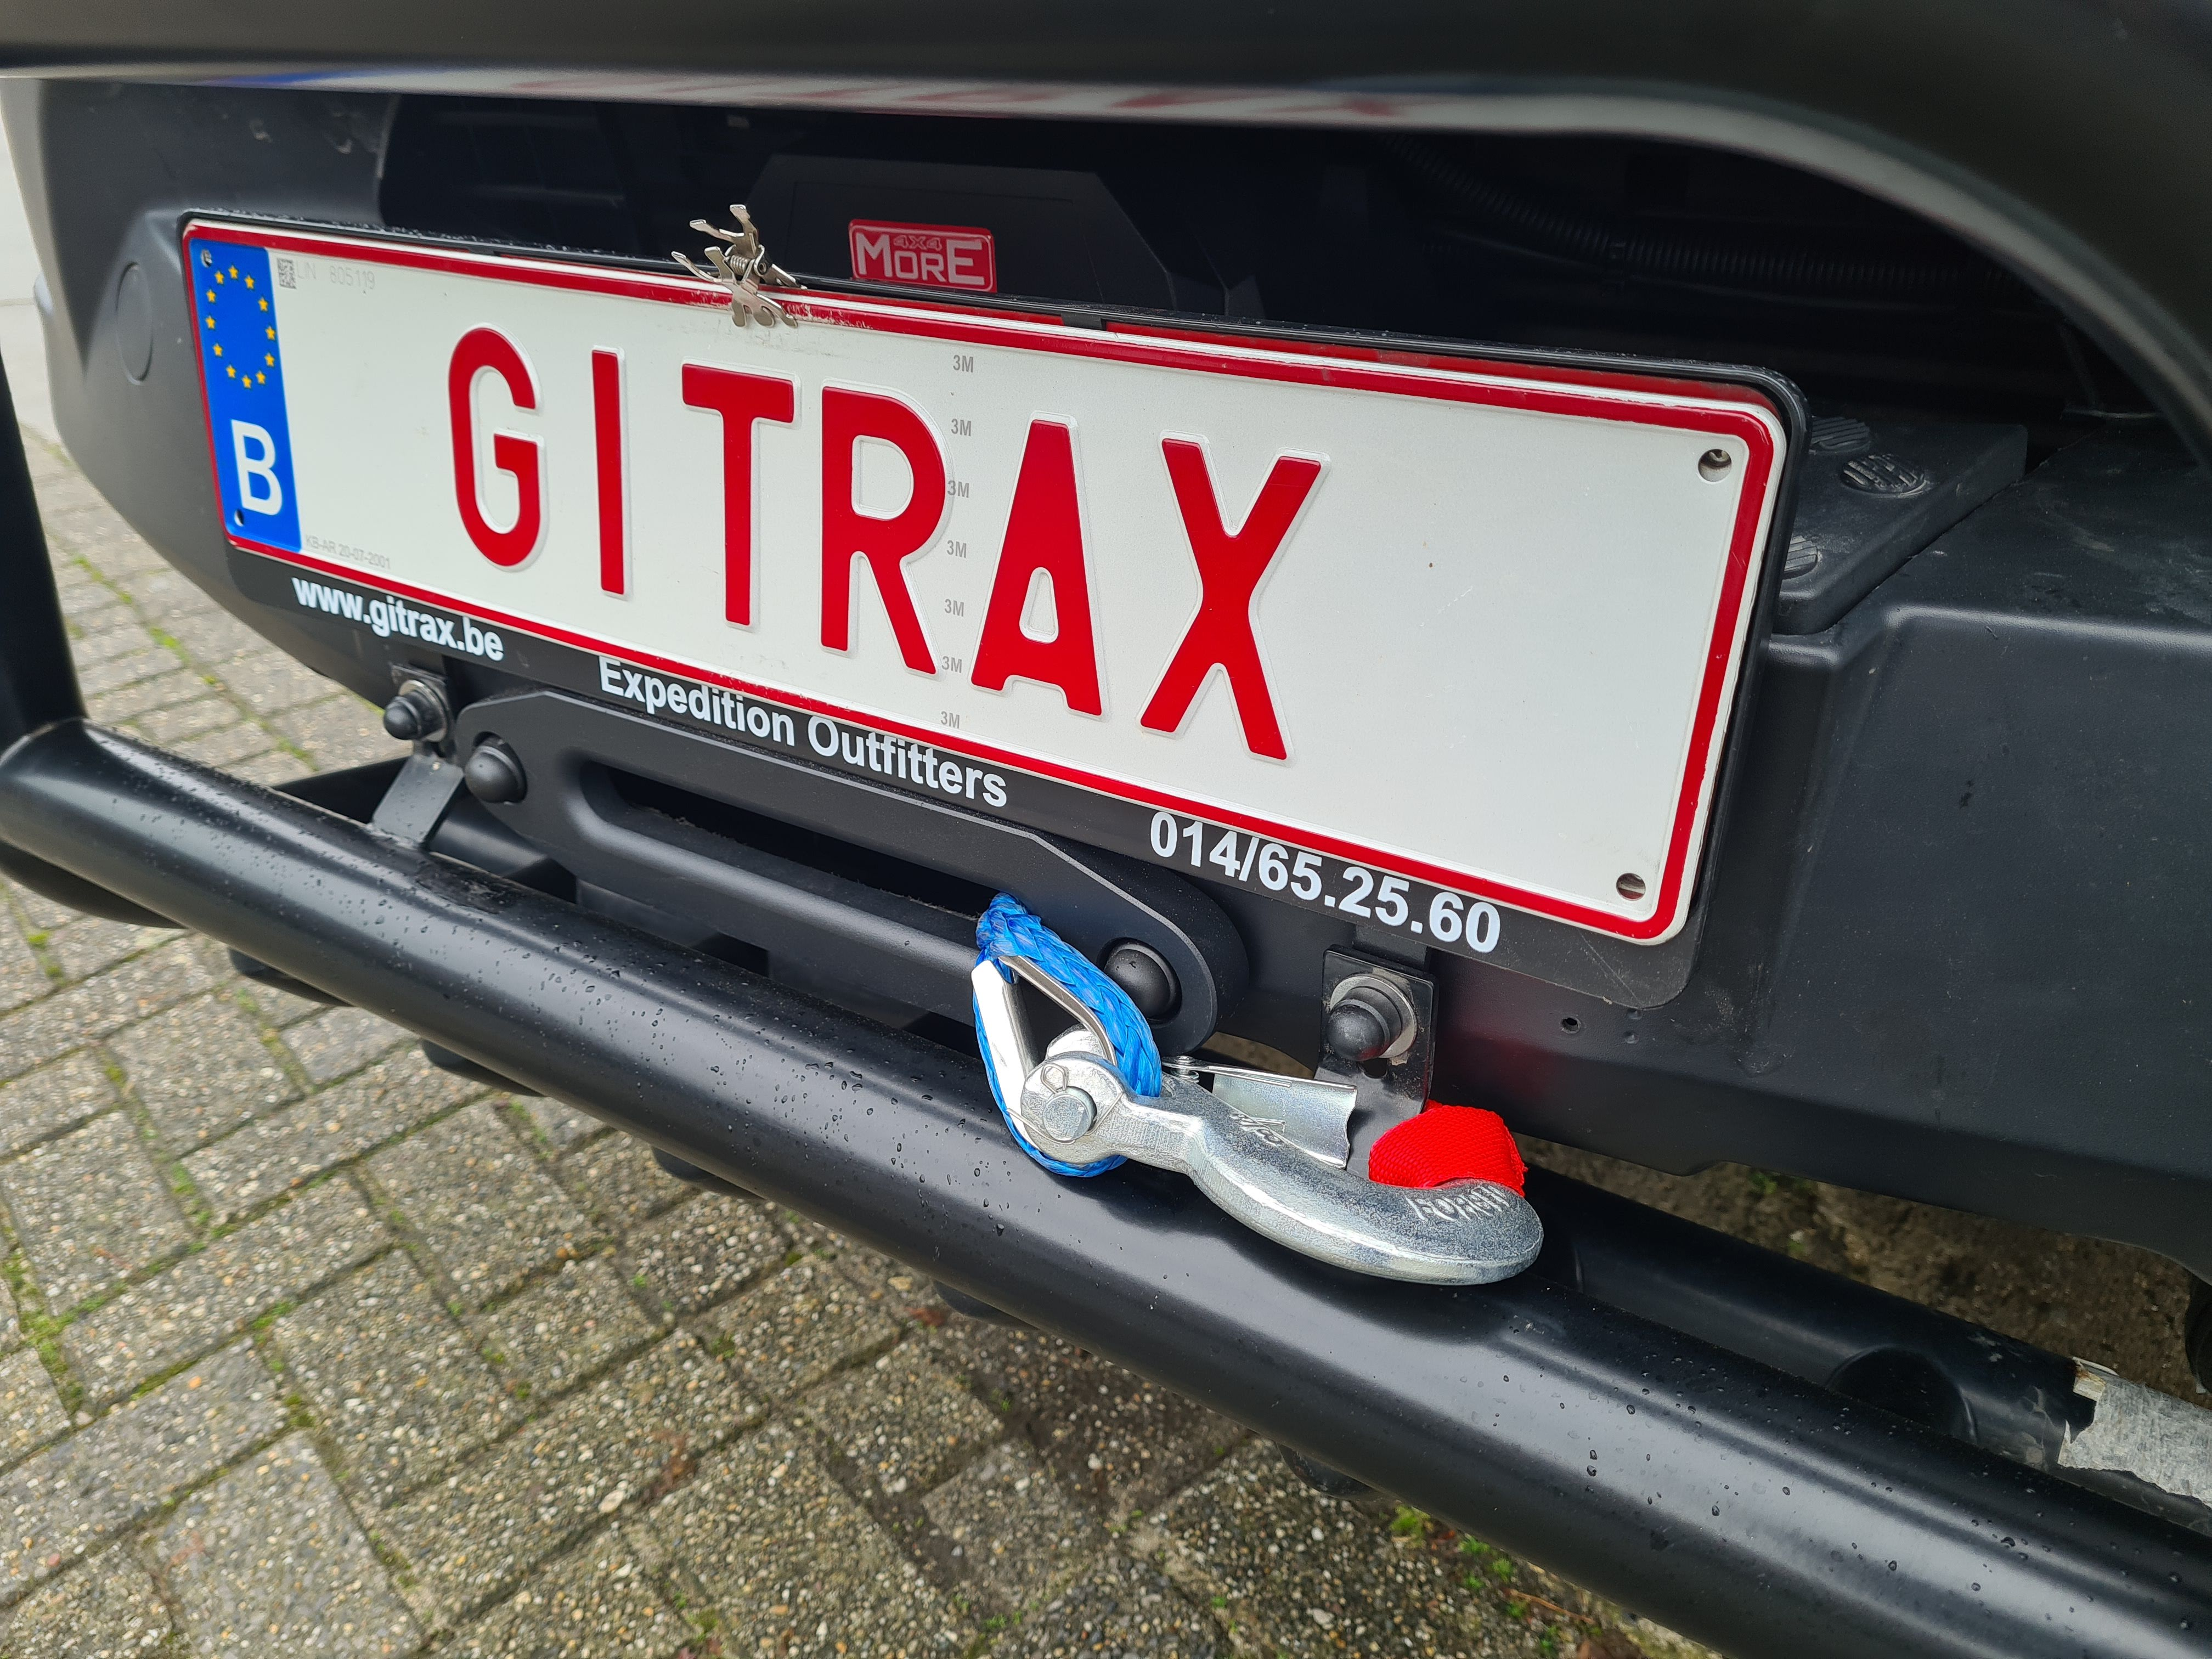 Mercedes Sprinter Gitrax